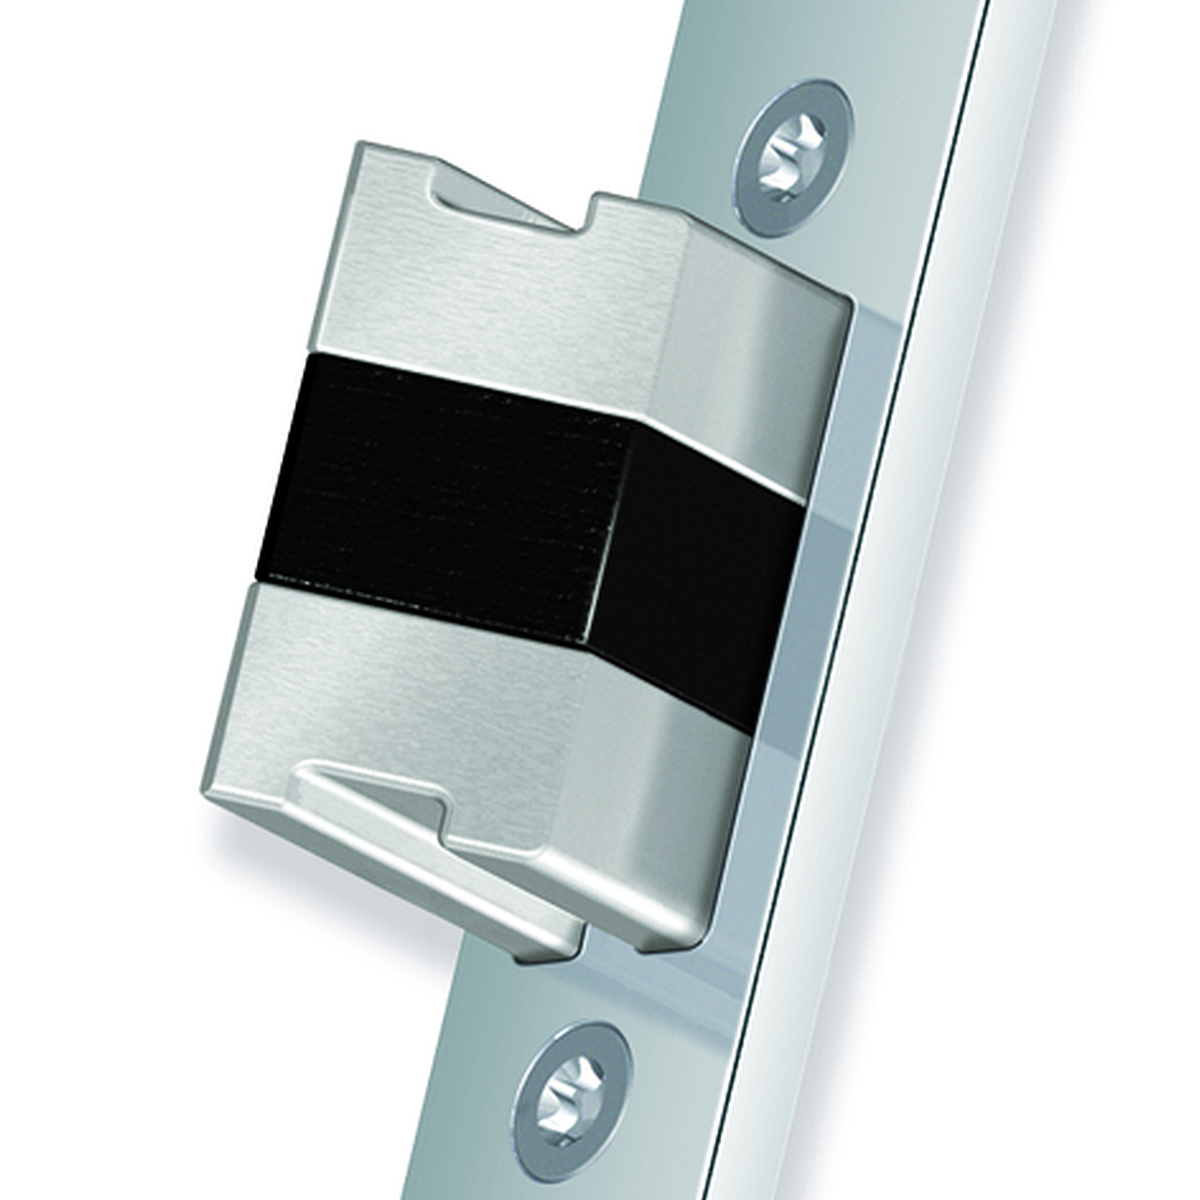 Dorma M Svp 3000 Emergency Escape Lock